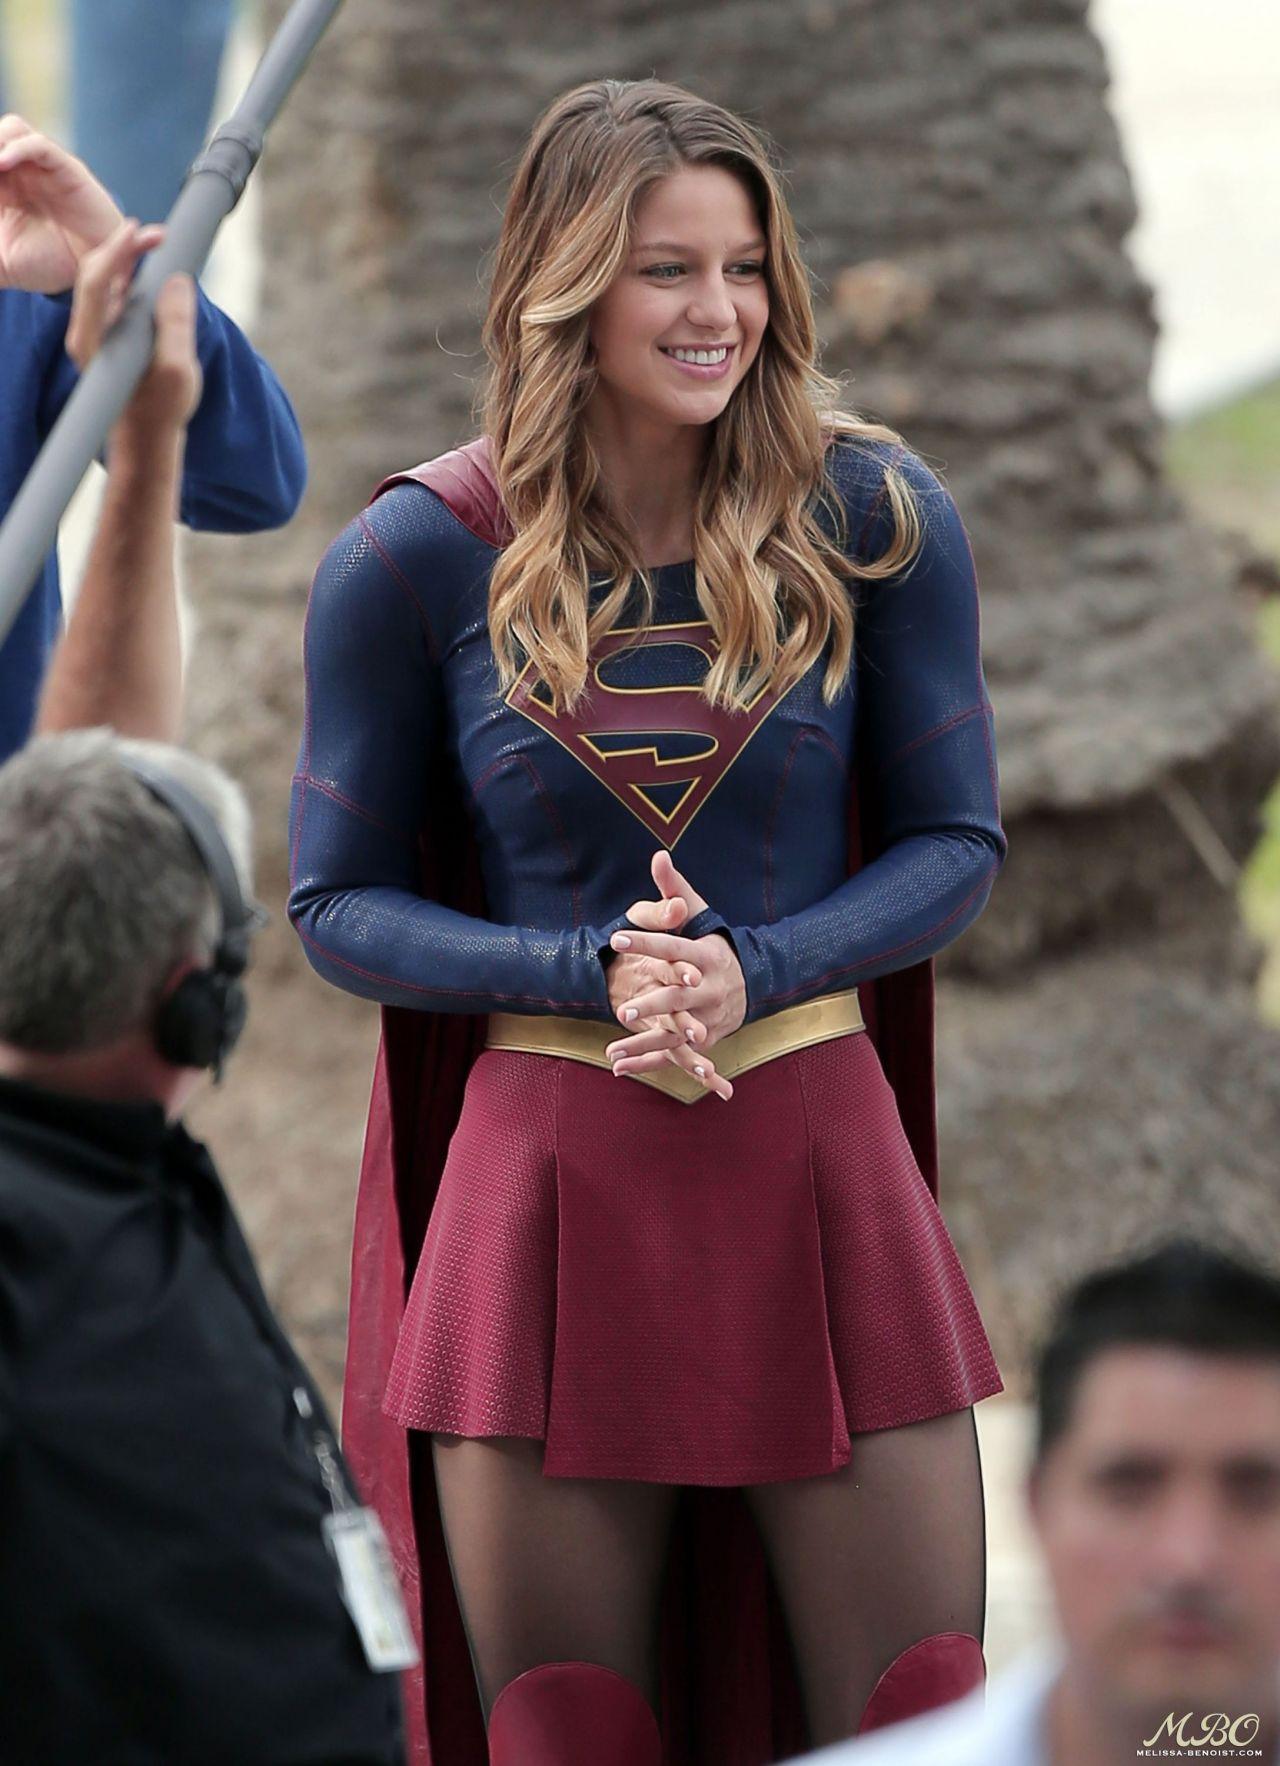 Supergirl upskirt in the comic con